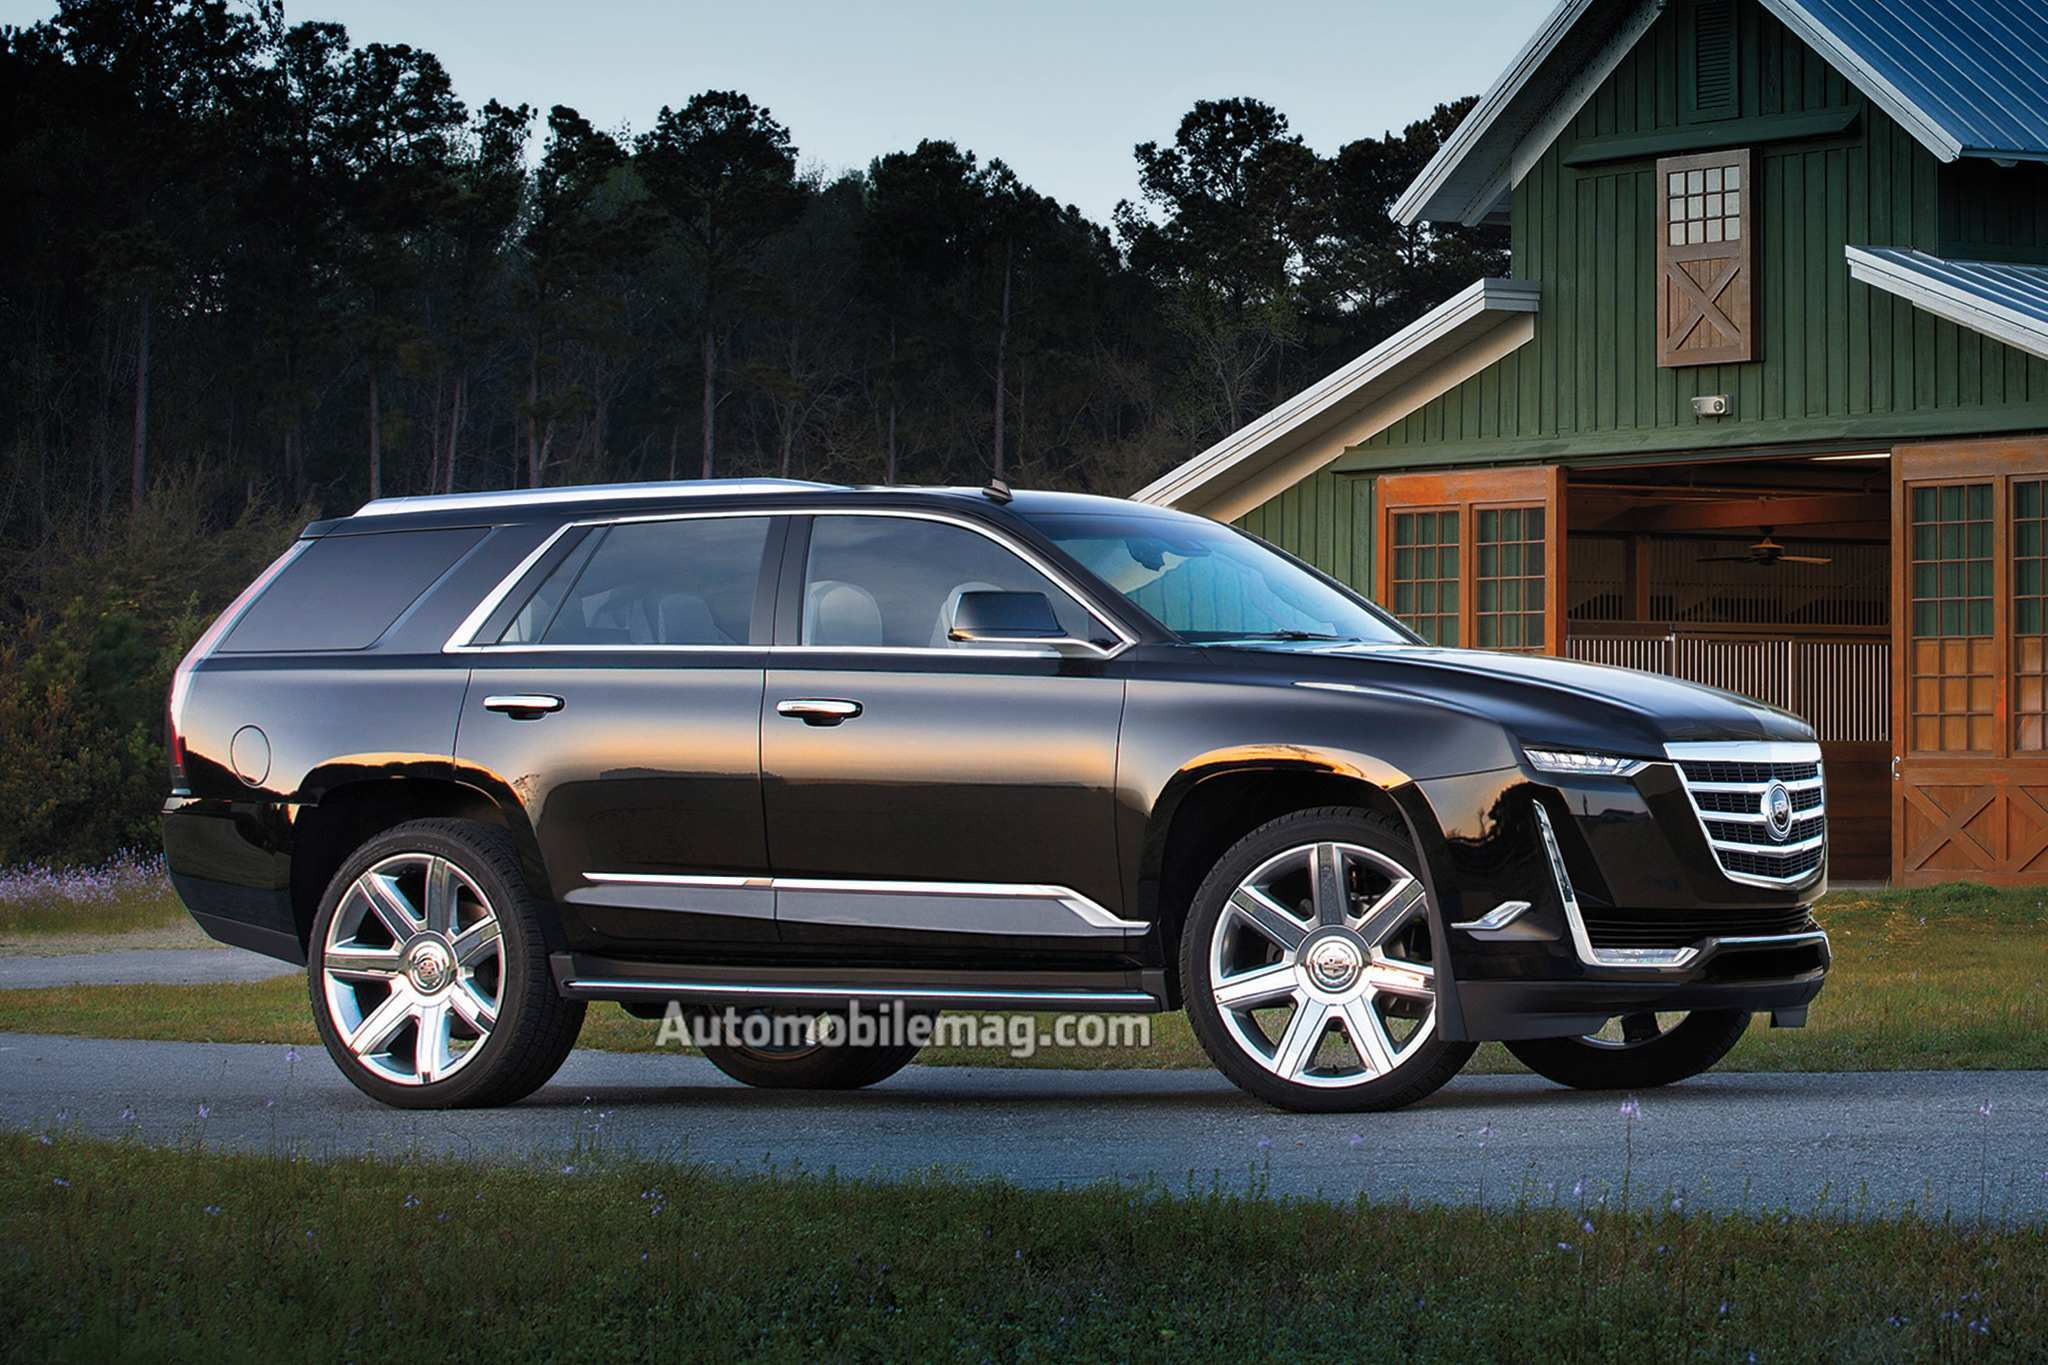 98 All New 2019 Cadillac Jeep Prices by 2019 Cadillac Jeep